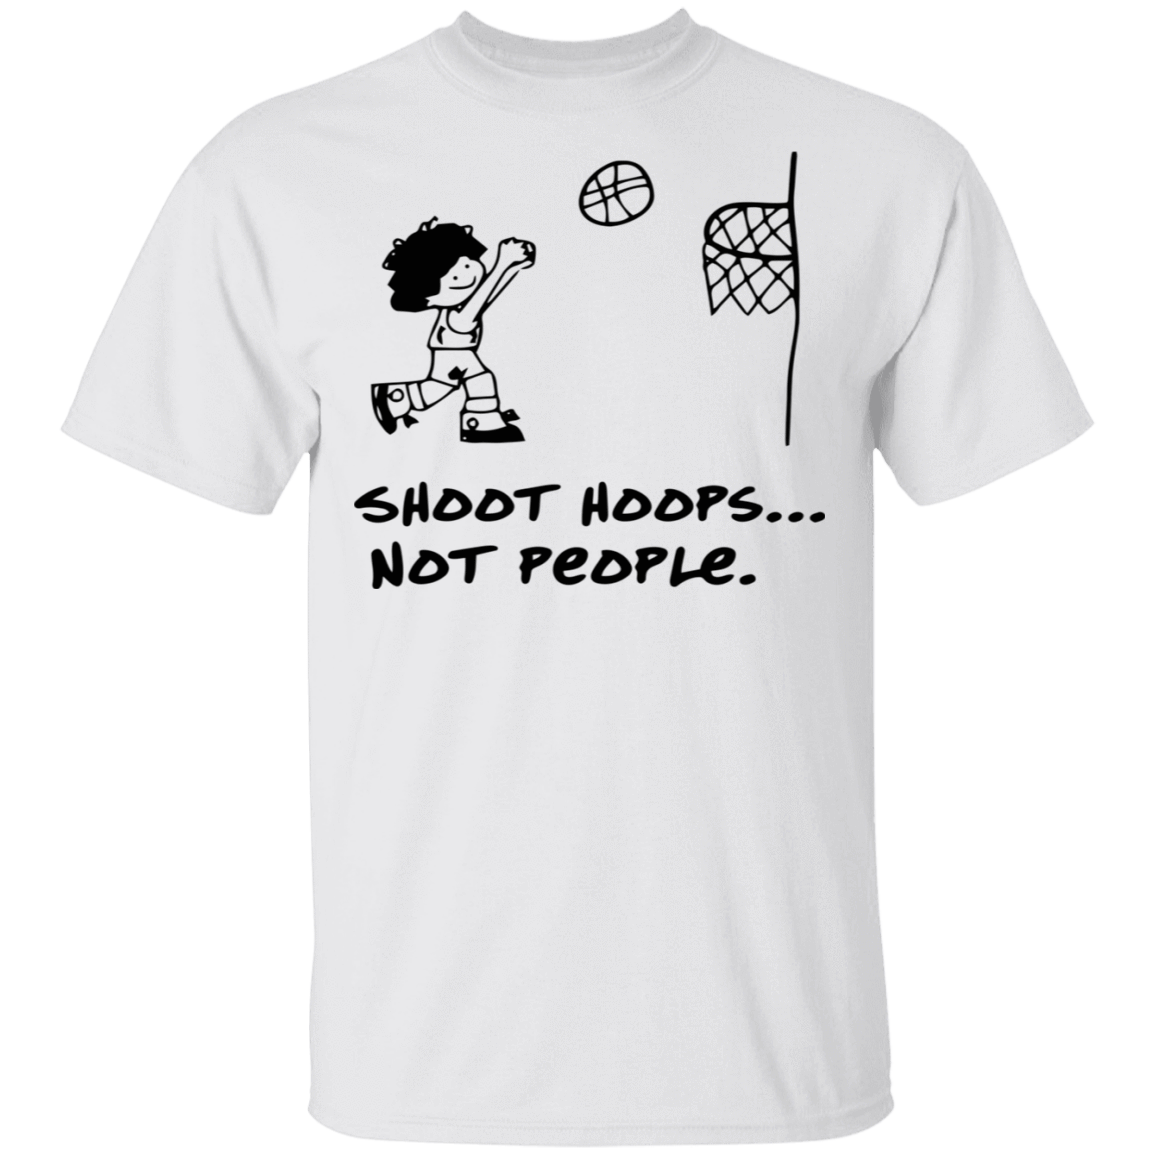 Shoot Hoops Not People T-Shirts, Hoodies, Tank 22-114-79279842-253 - Tee Ript